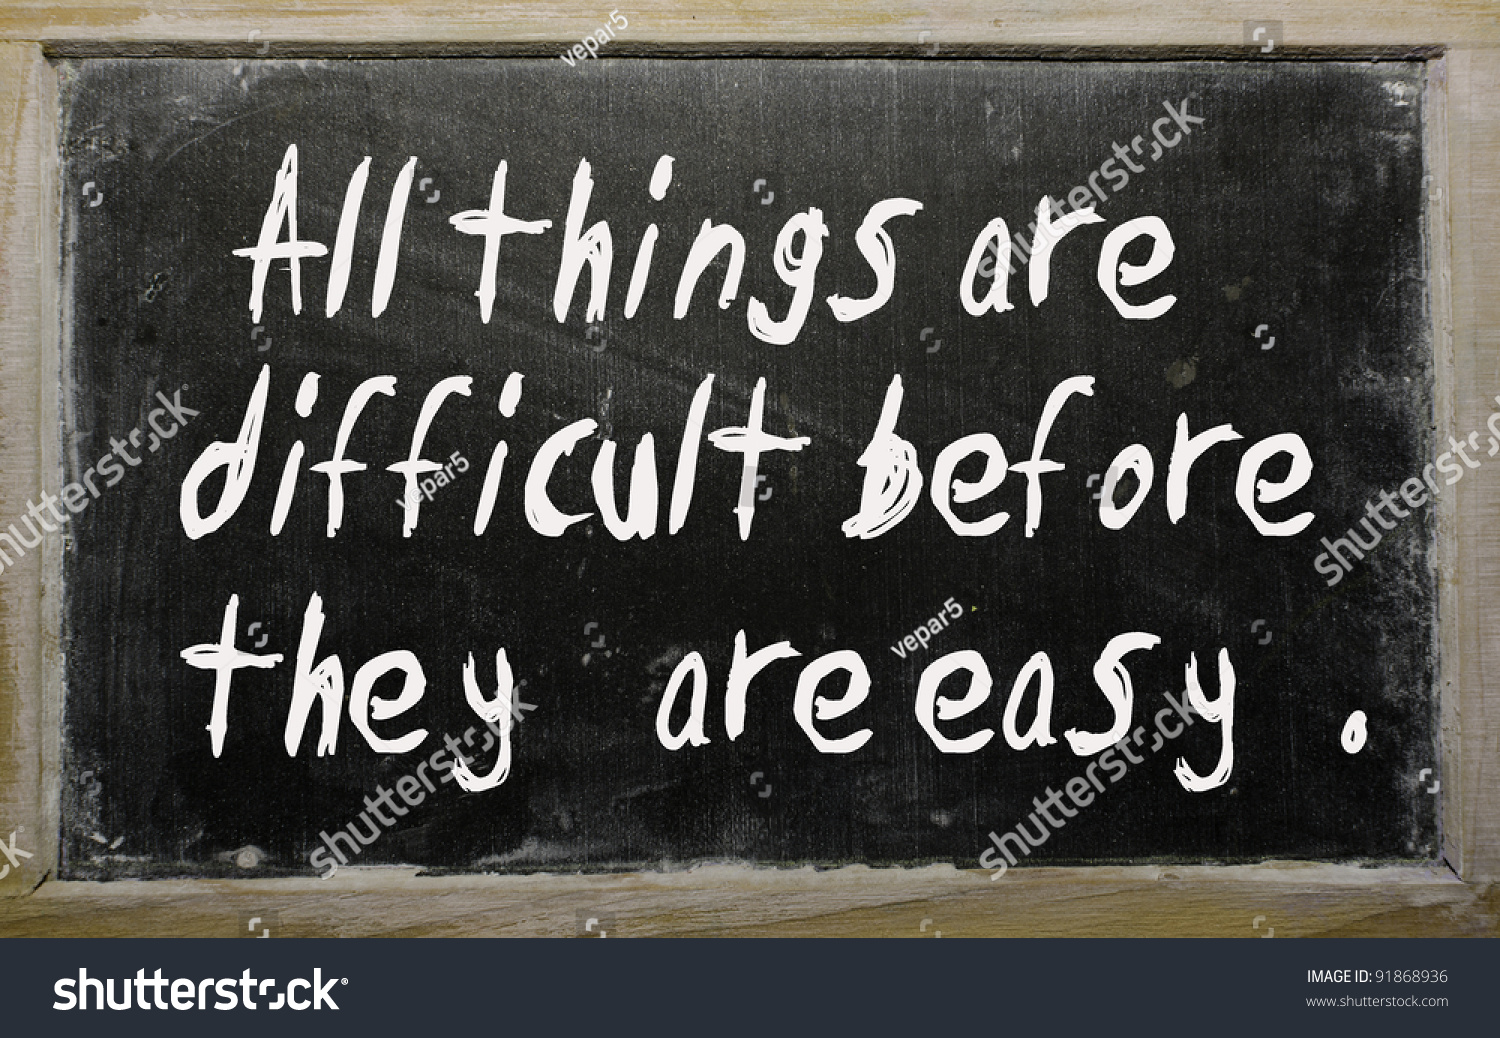 all things are difficult before they are easy essay How to construct an essay a good way to tie all the points together throughout the body section is to have them all clearly state how they its easy to make.